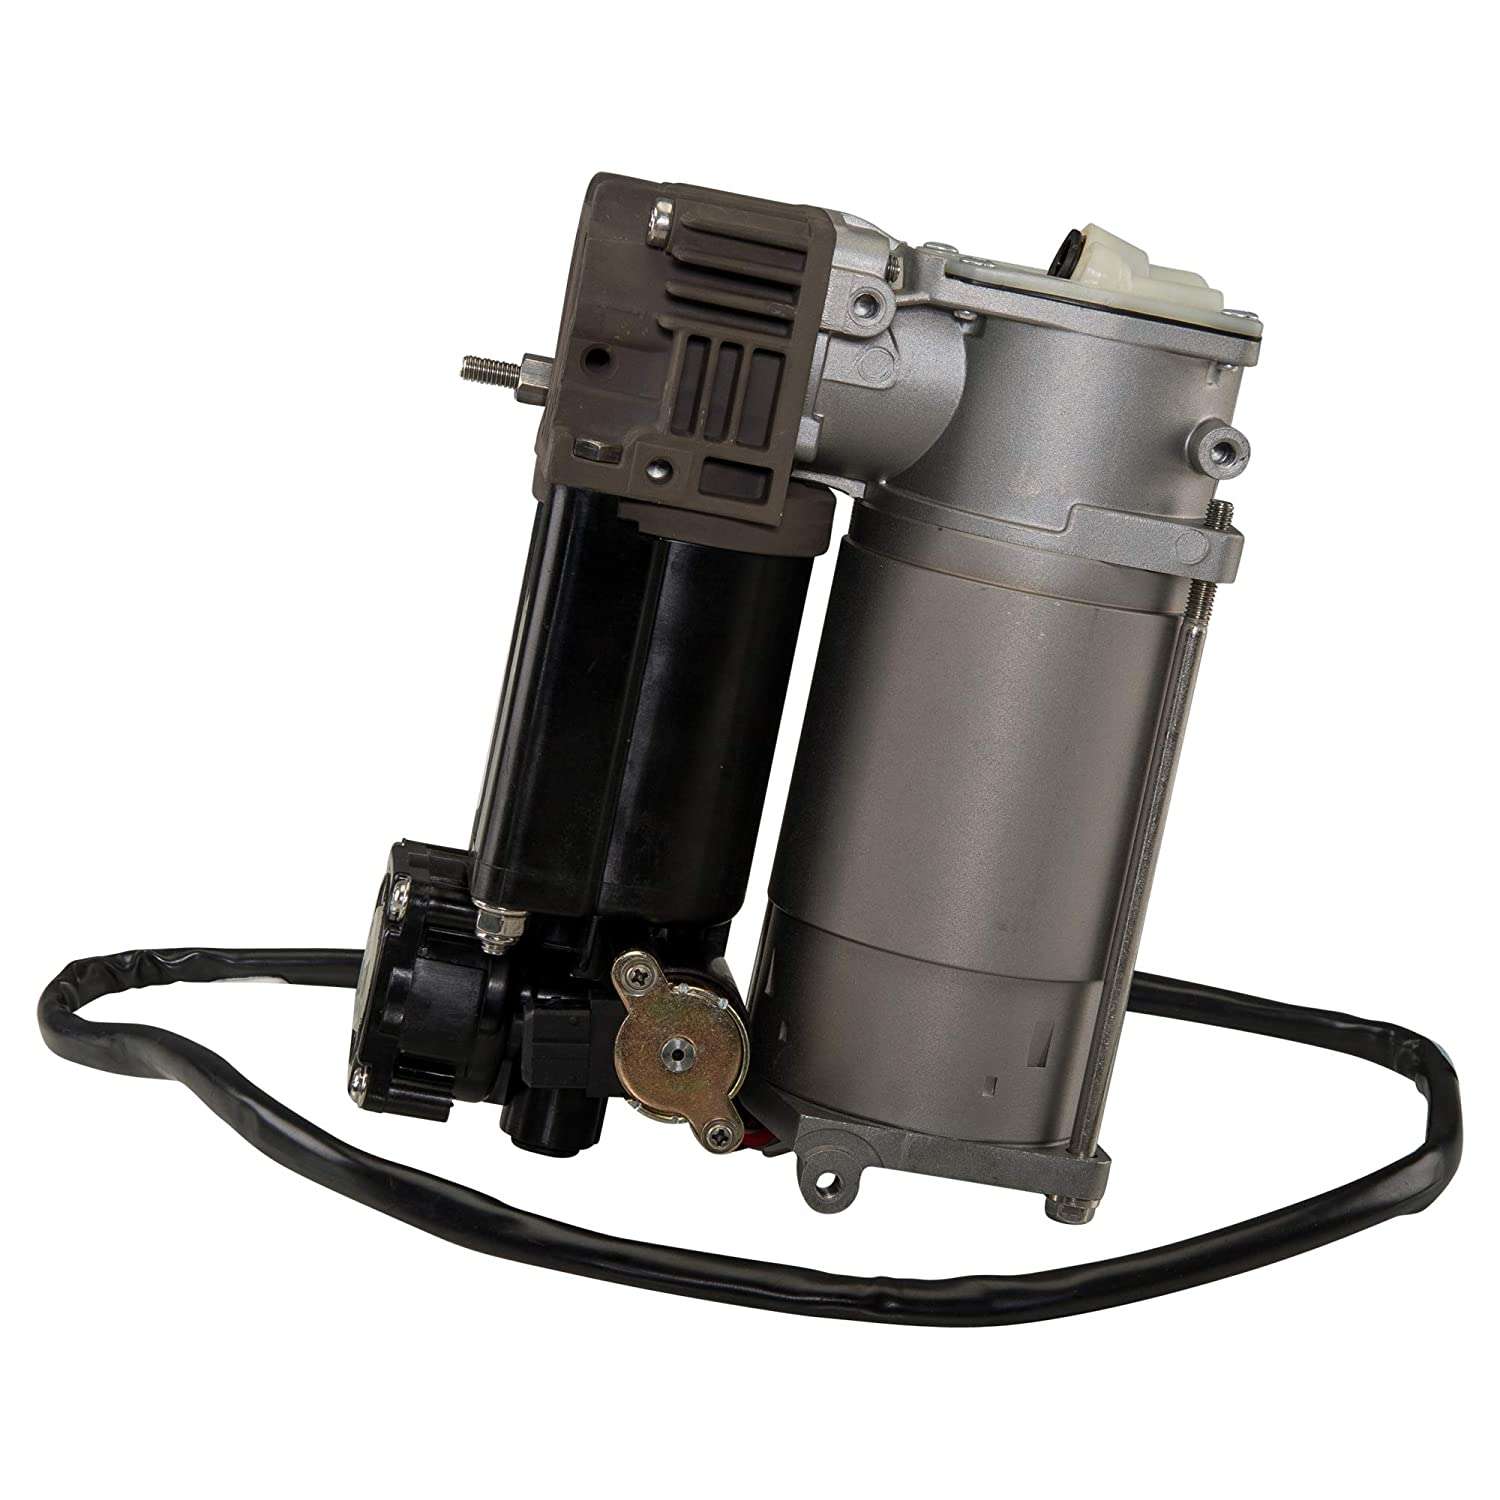 Air Compressor for 2003-2005 Land Rover Range Rover fits P-2462 Parts Galaxy